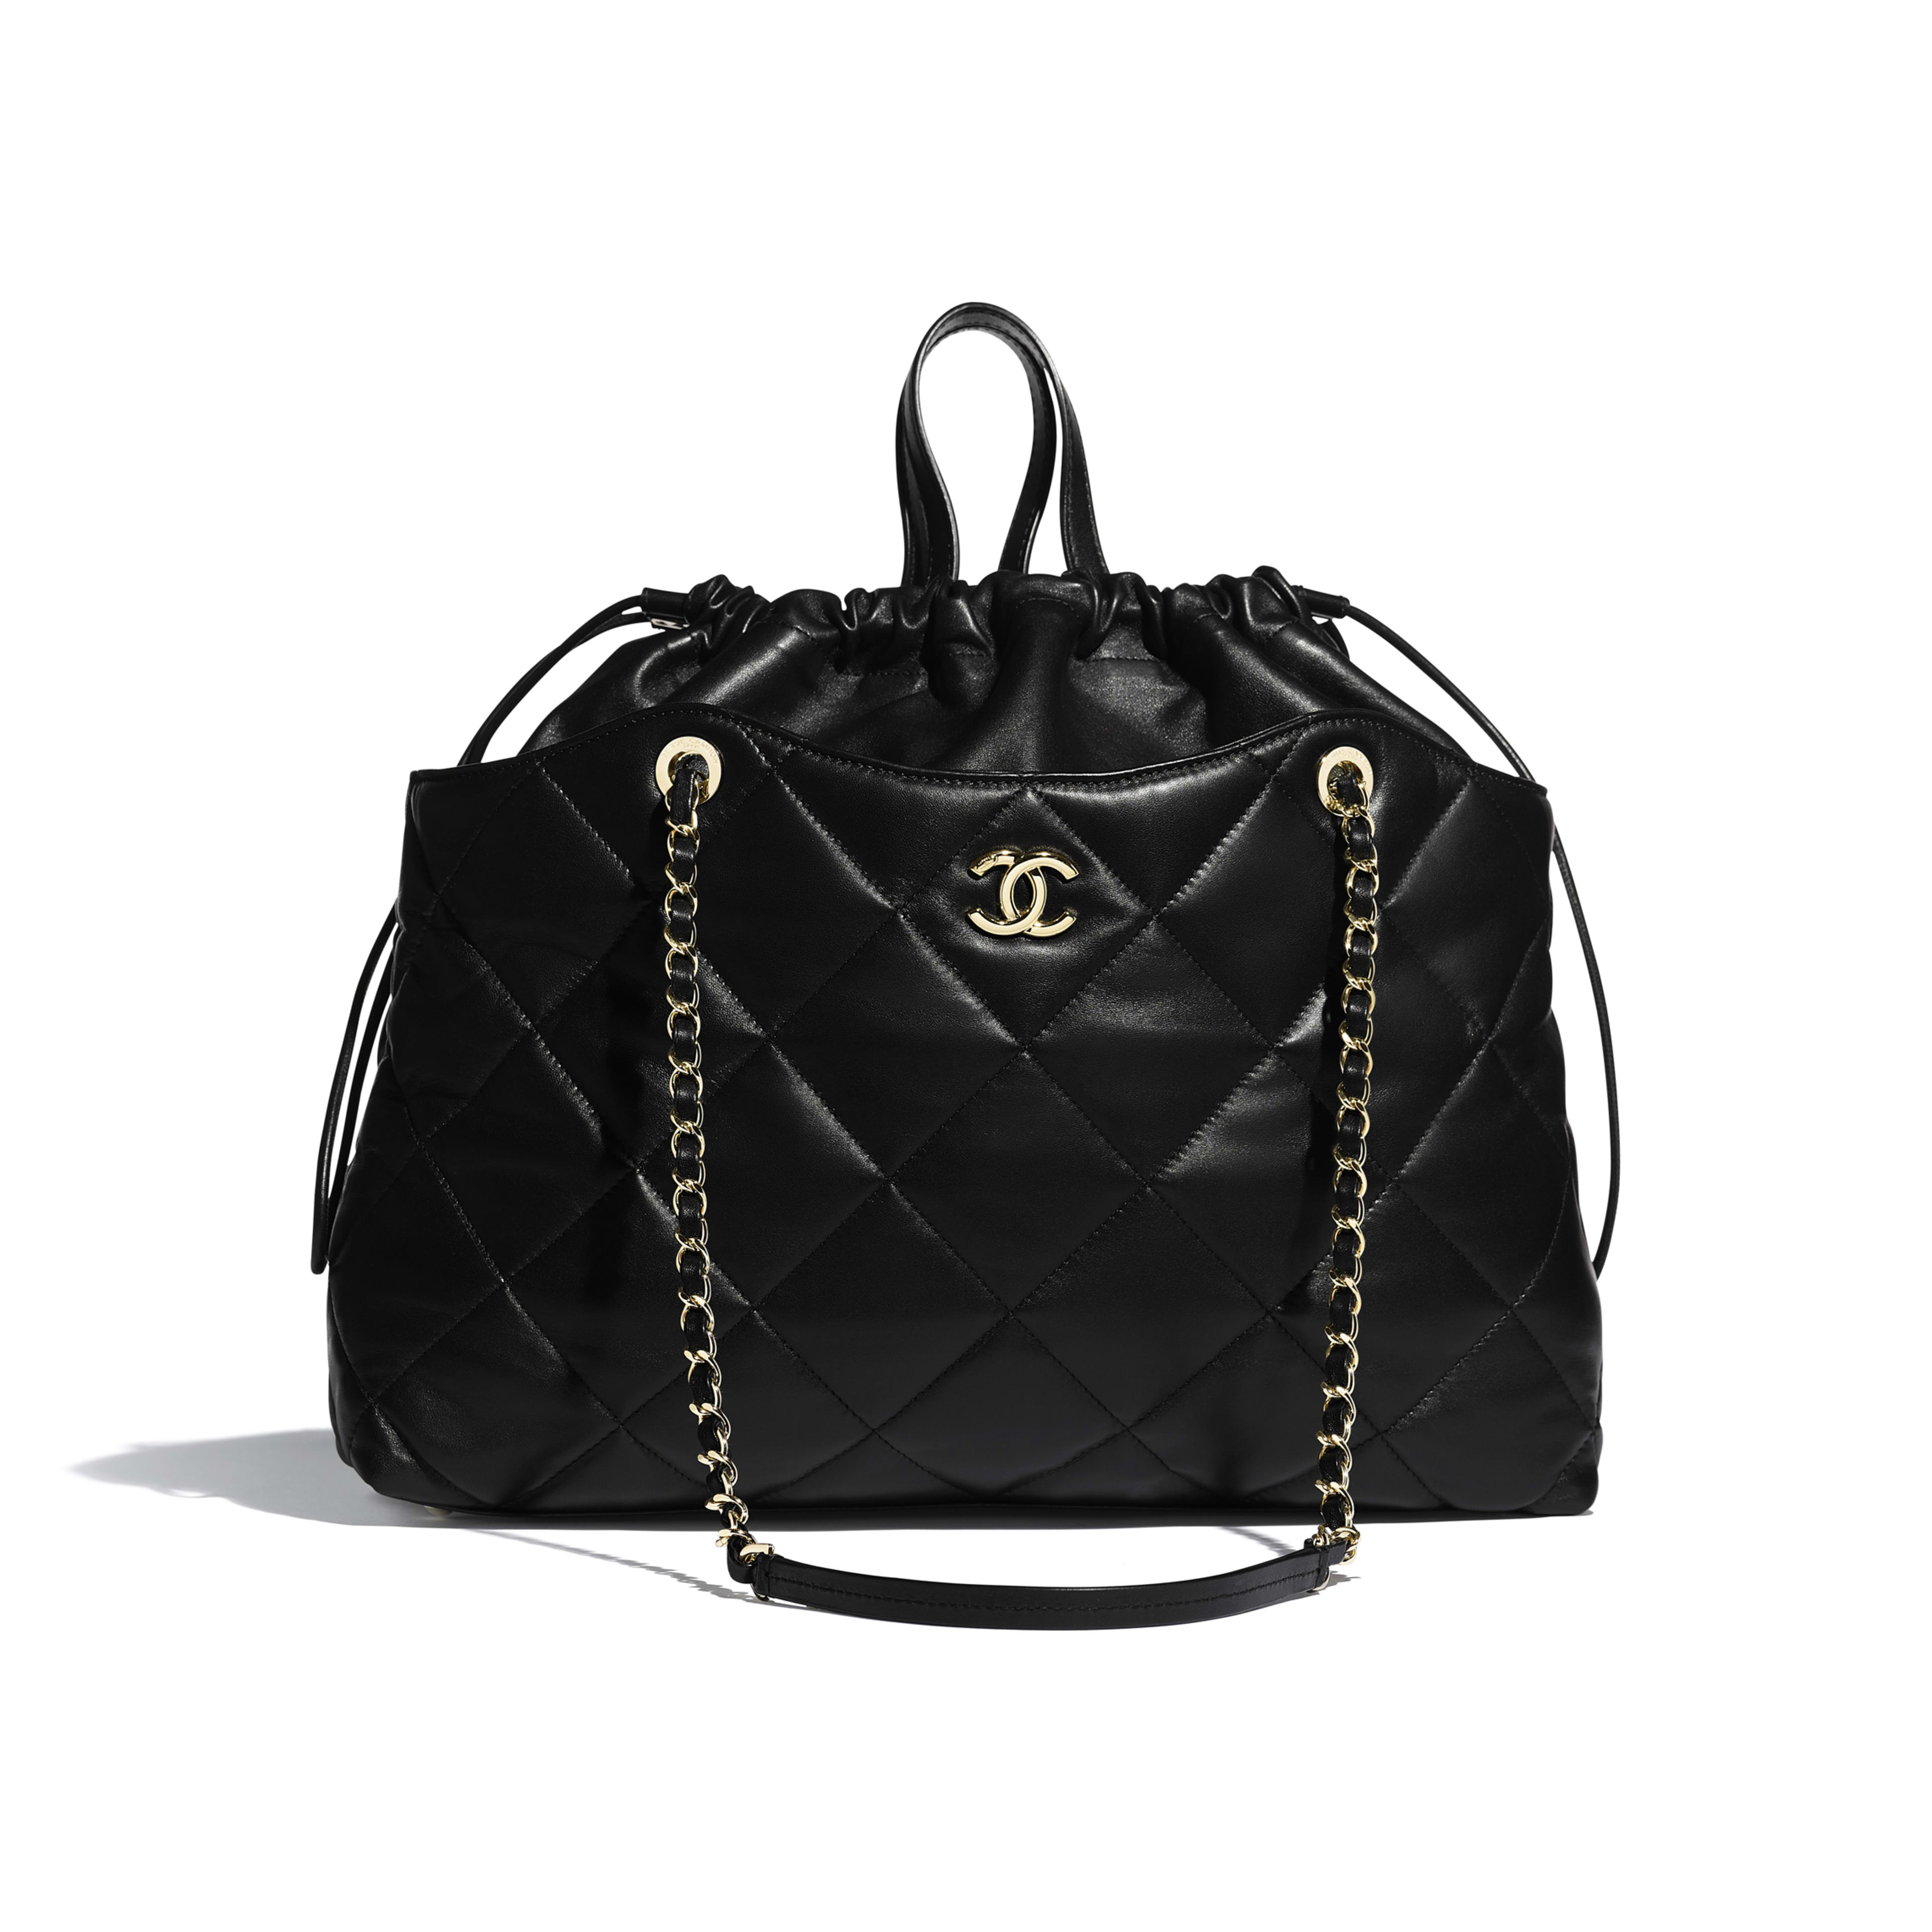 Shopping Bag - Black - Lambskin - Default view - see full sized version